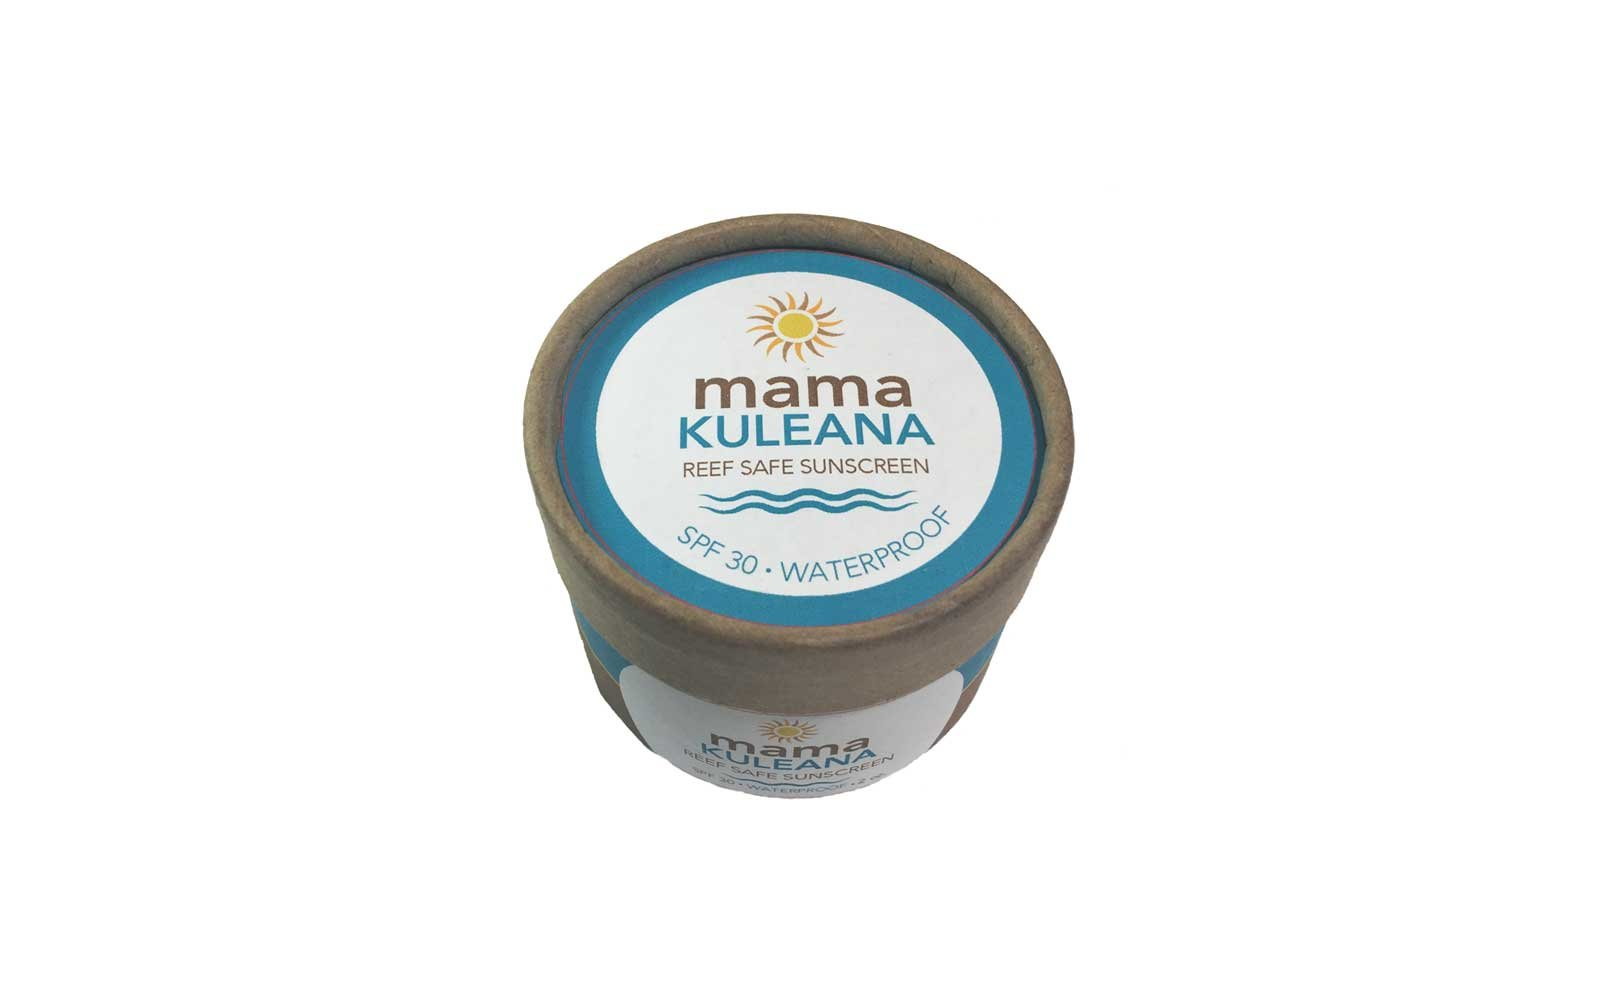 reef safe sunscreen mama kuleana